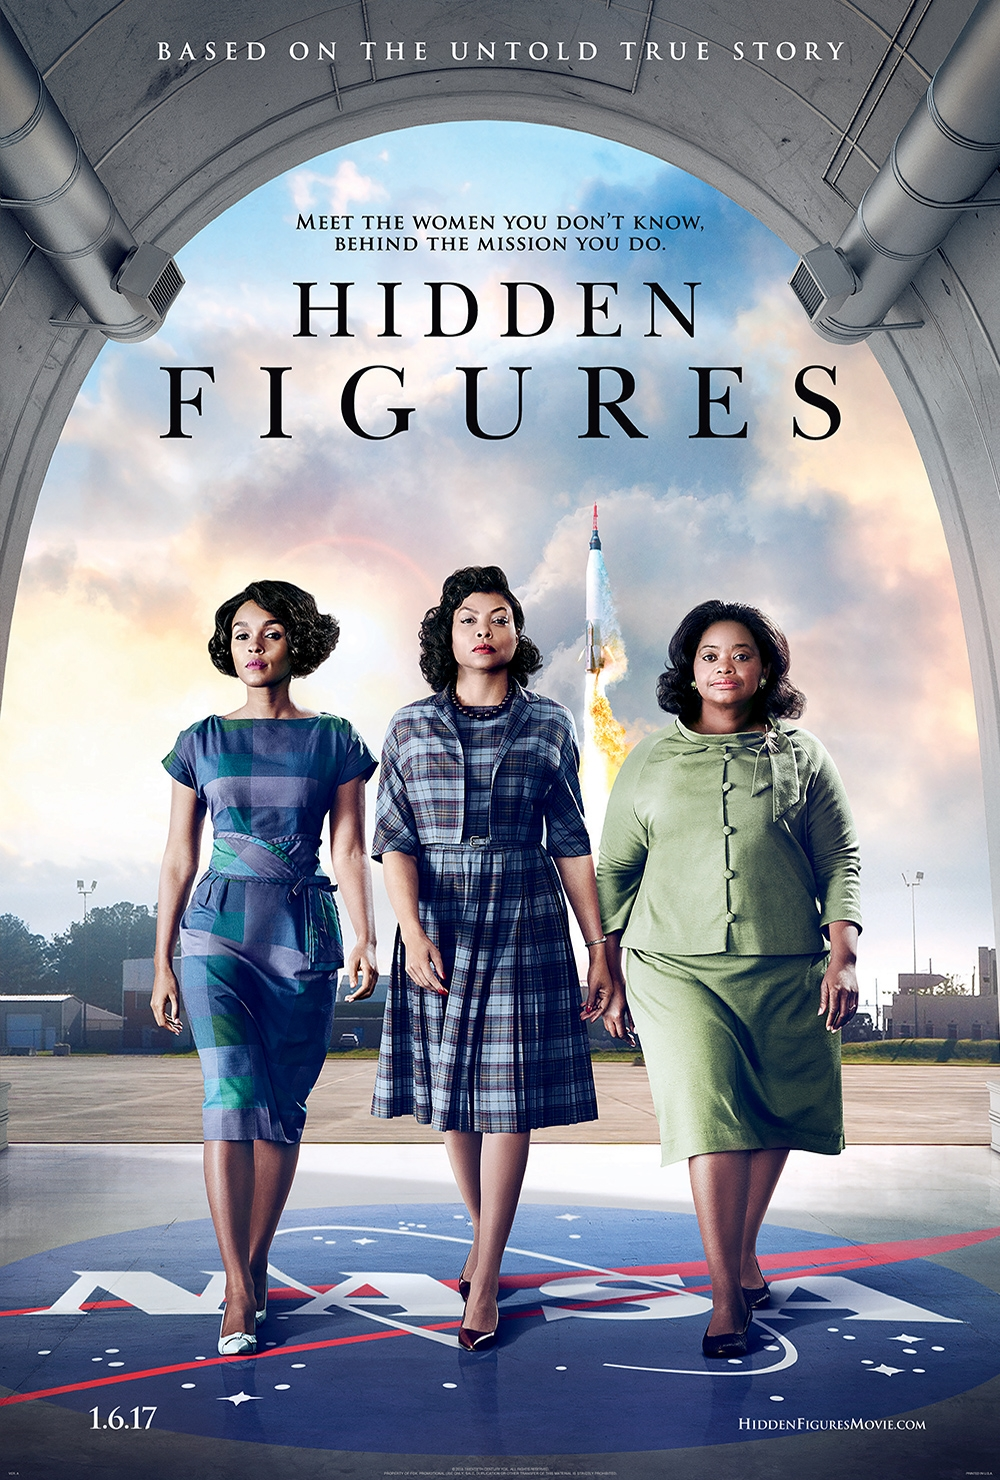 "Hidden Figures           Normal   0           false   false   false     EN-US   X-NONE   X-NONE                                                                                                                                                                                                                                                                                                                                                                                                                                                                                                                                                                                                                                                                                                                                                                                                                                                                                     /* Style Definitions */ table.MsoNormalTable 	{mso-style-name:""Table Normal""; 	mso-tstyle-rowband-size:0; 	mso-tstyle-colband-size:0; 	mso-style-noshow:yes; 	mso-style-priority:99; 	mso-style-parent:""""; 	mso-padding-alt:0cm 5.4pt 0cm 5.4pt; 	mso-para-margin-top:0cm; 	mso-para-margin-right:0cm; 	mso-para-margin-bottom:8.0pt; 	mso-para-margin-left:0cm; 	line-height:107%; 	mso-pagination:widow-orphan; 	font-size:11.0pt; 	font-family:""Calibri"",sans-serif; 	color:black;}      Hidden Figures  is based on a true story about African American female mathematicians who worked at NASA during the Space Race. These three women played vital roles in helping the United States become...   Read More"